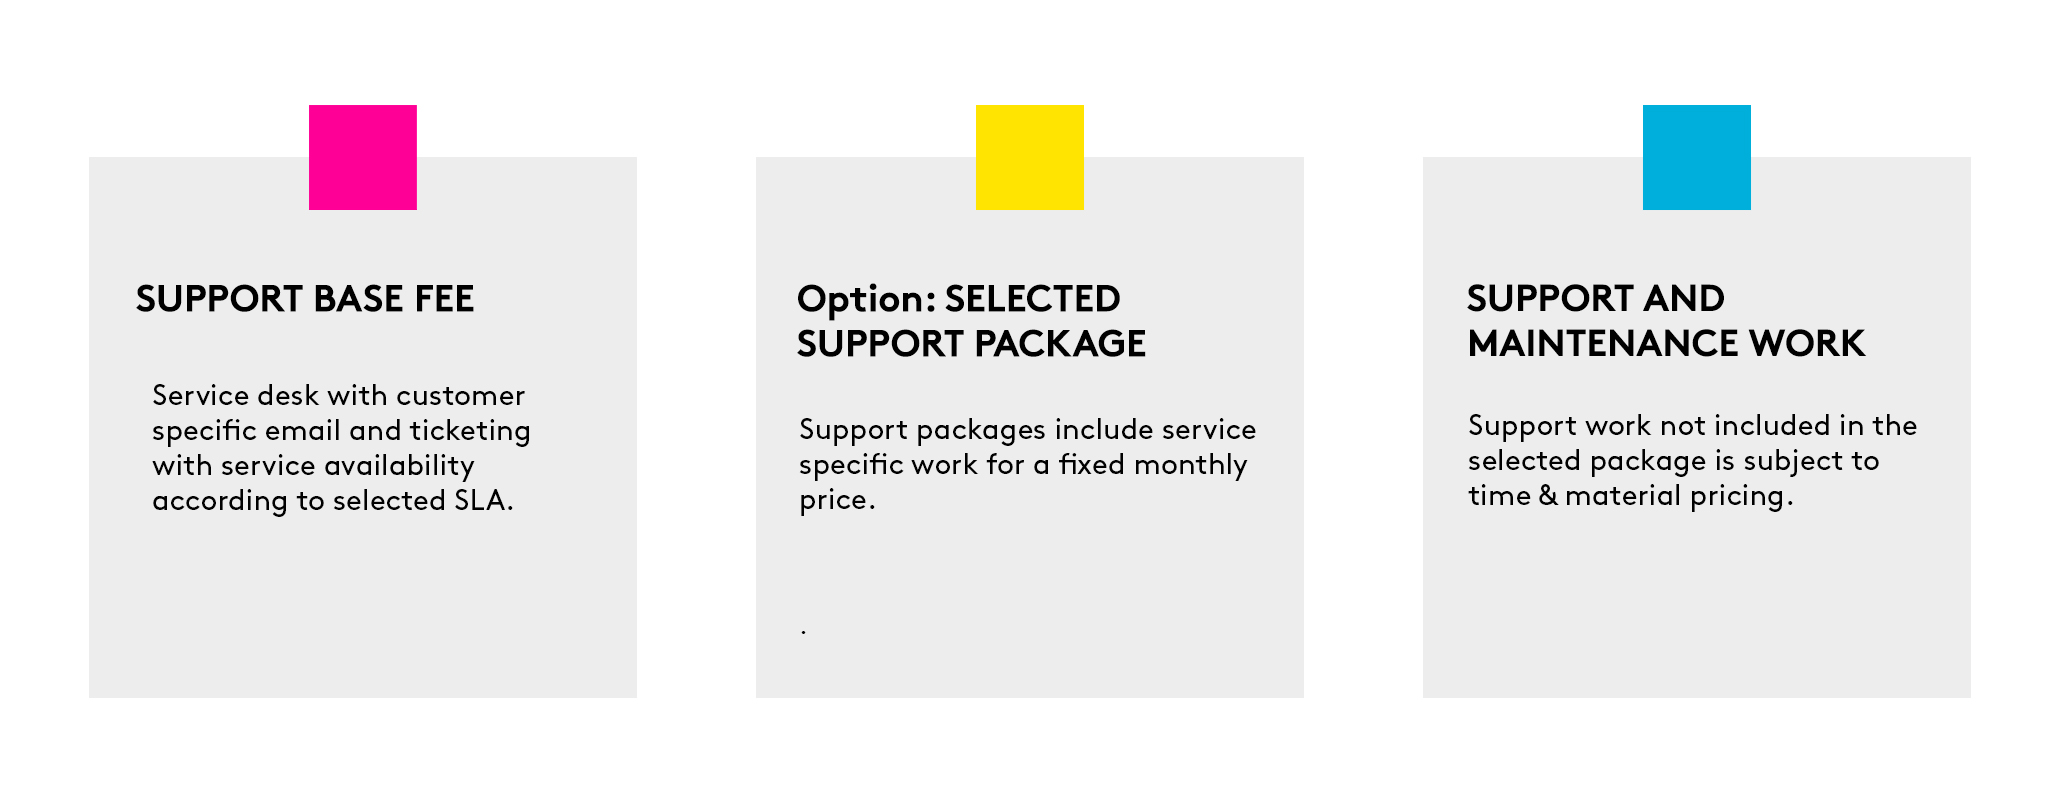 HiQ support service pricing models